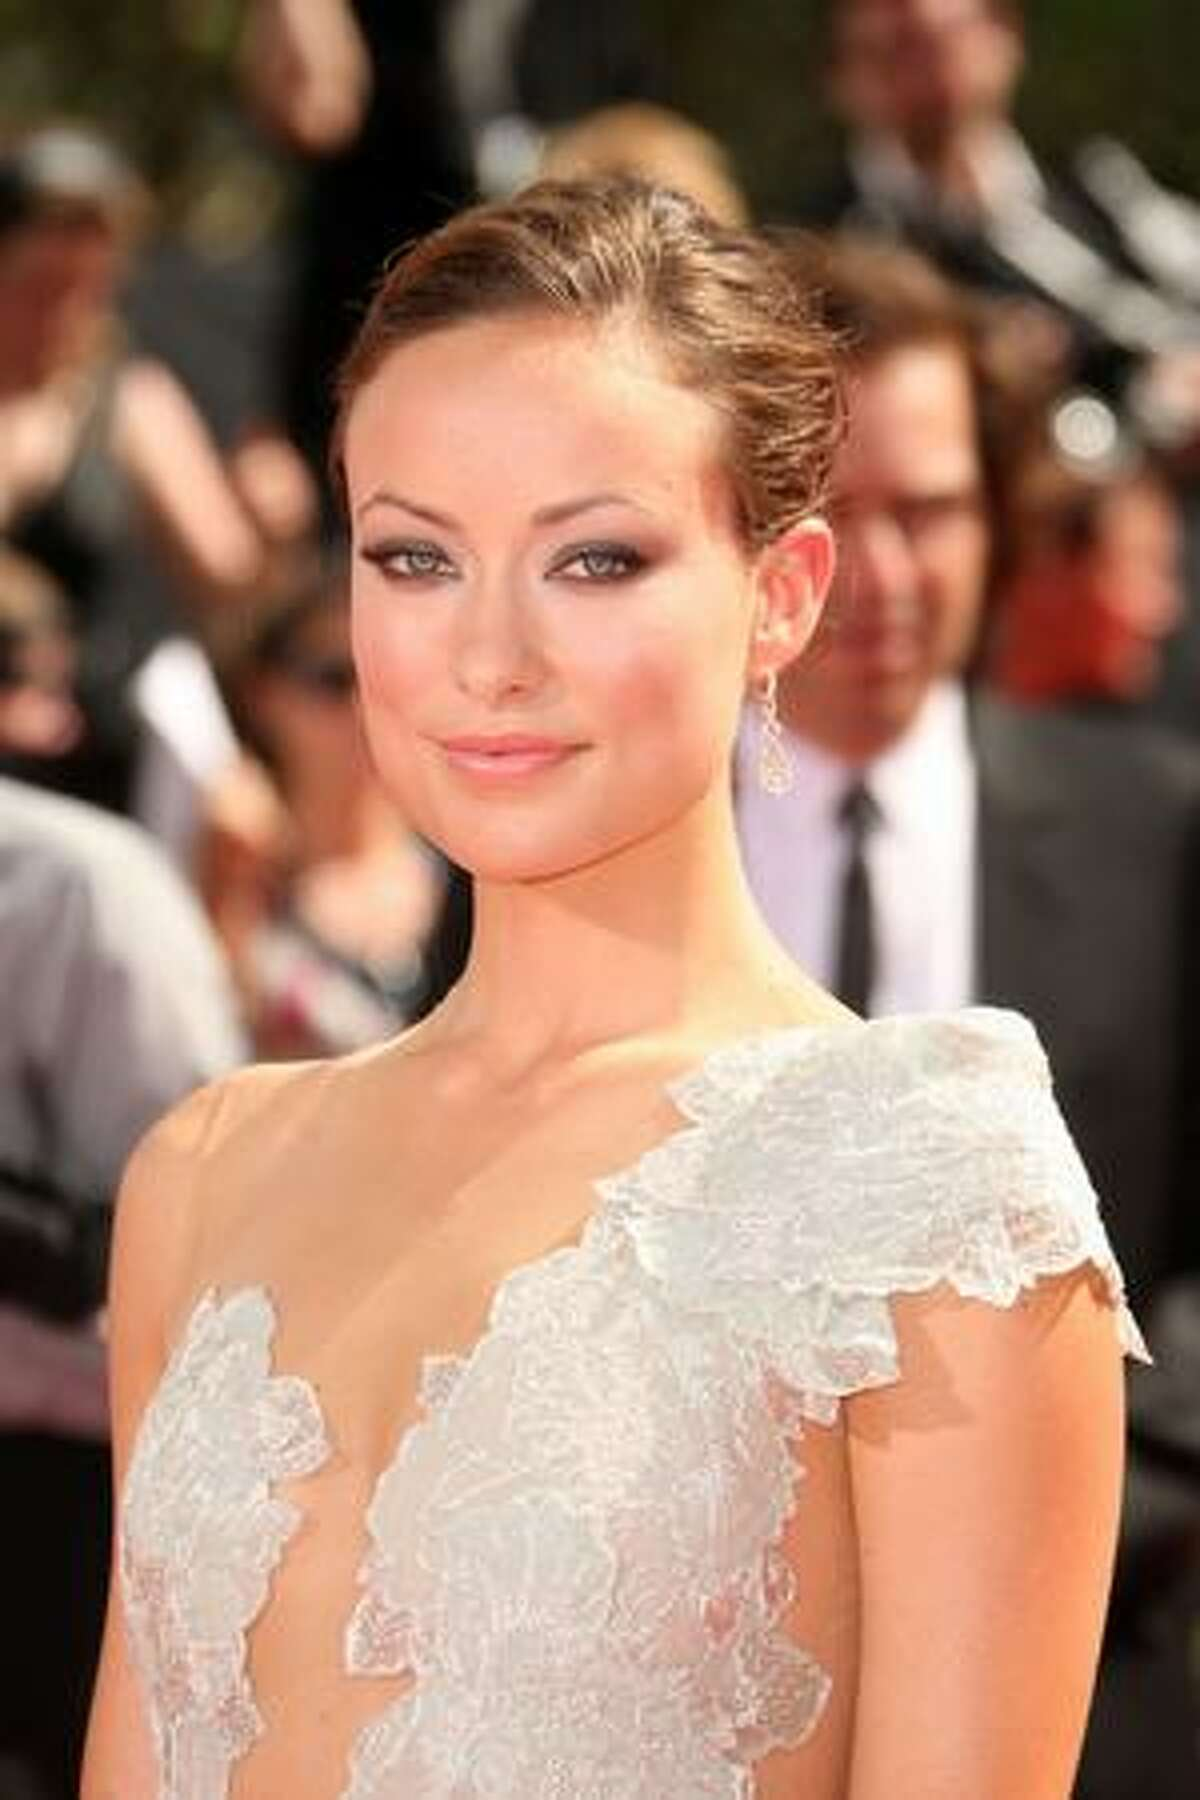 Actress Olivia Wilde arrives at the 61st Primetime Emmy Awards held at the Nokia Theatre on Sunday in Los Angeles, California.